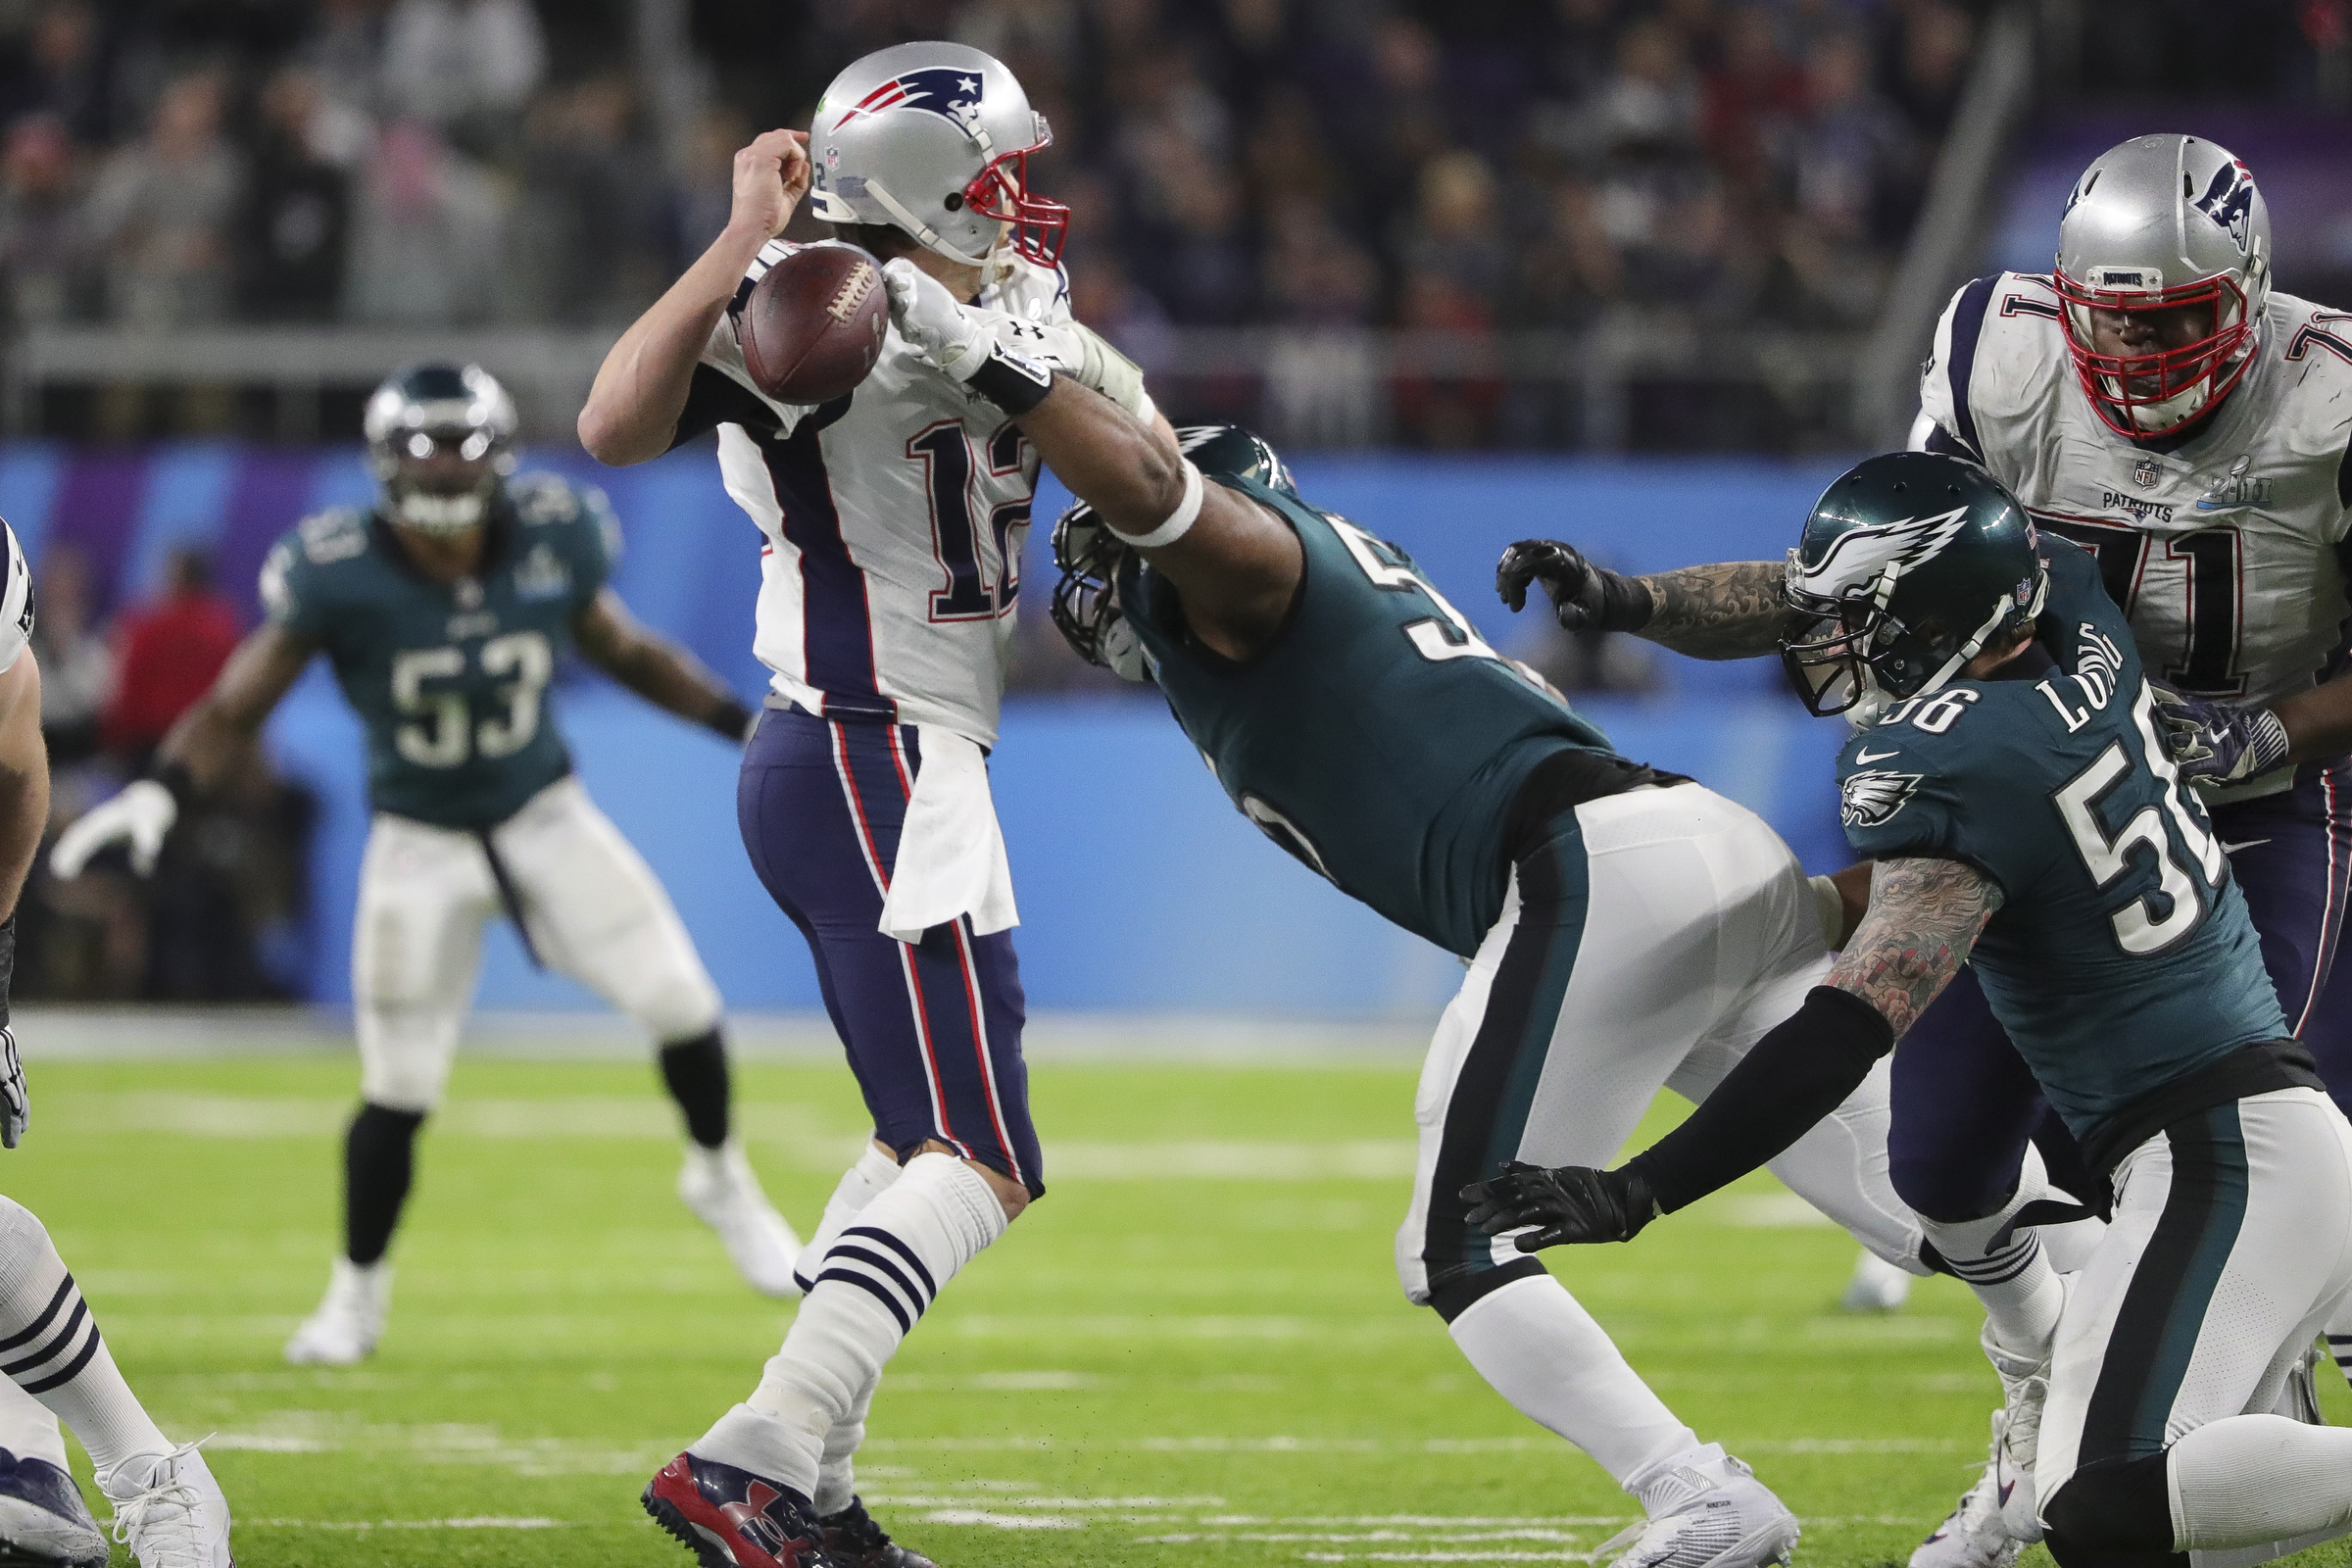 The forced fumble heard ´round the region. Brandon Graham dislodges the ball from Tom Brady late in Super Bowl 52.